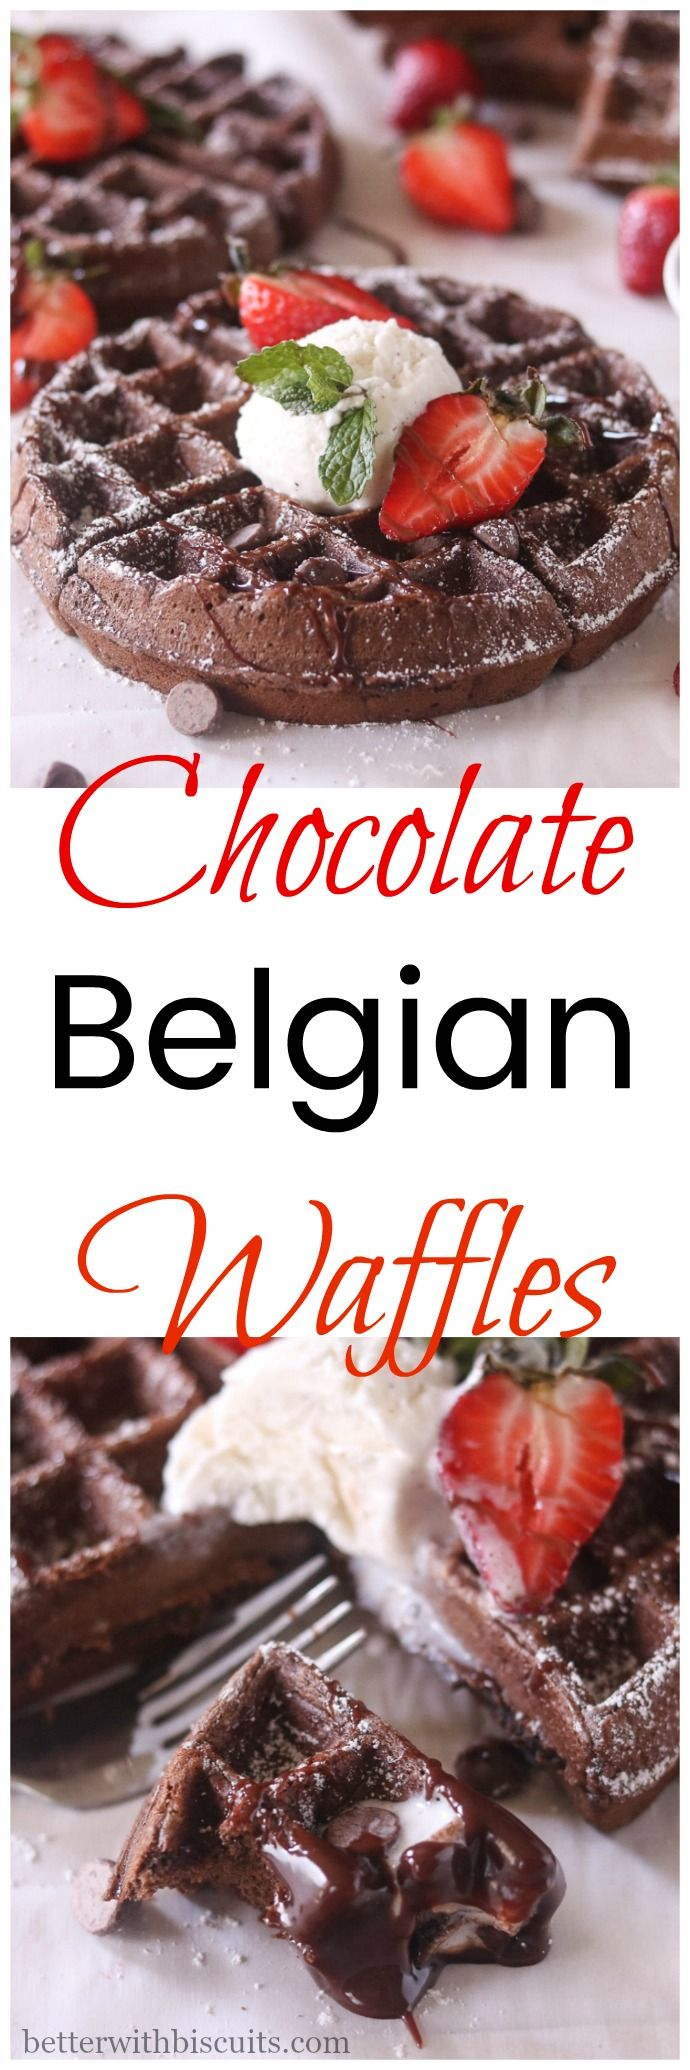 These Chocolate Belgian Waffles have a touch of sweetness, crispiness on the outside, chocolate chewy goodness on the inside, and is complete heaven on your tongue.